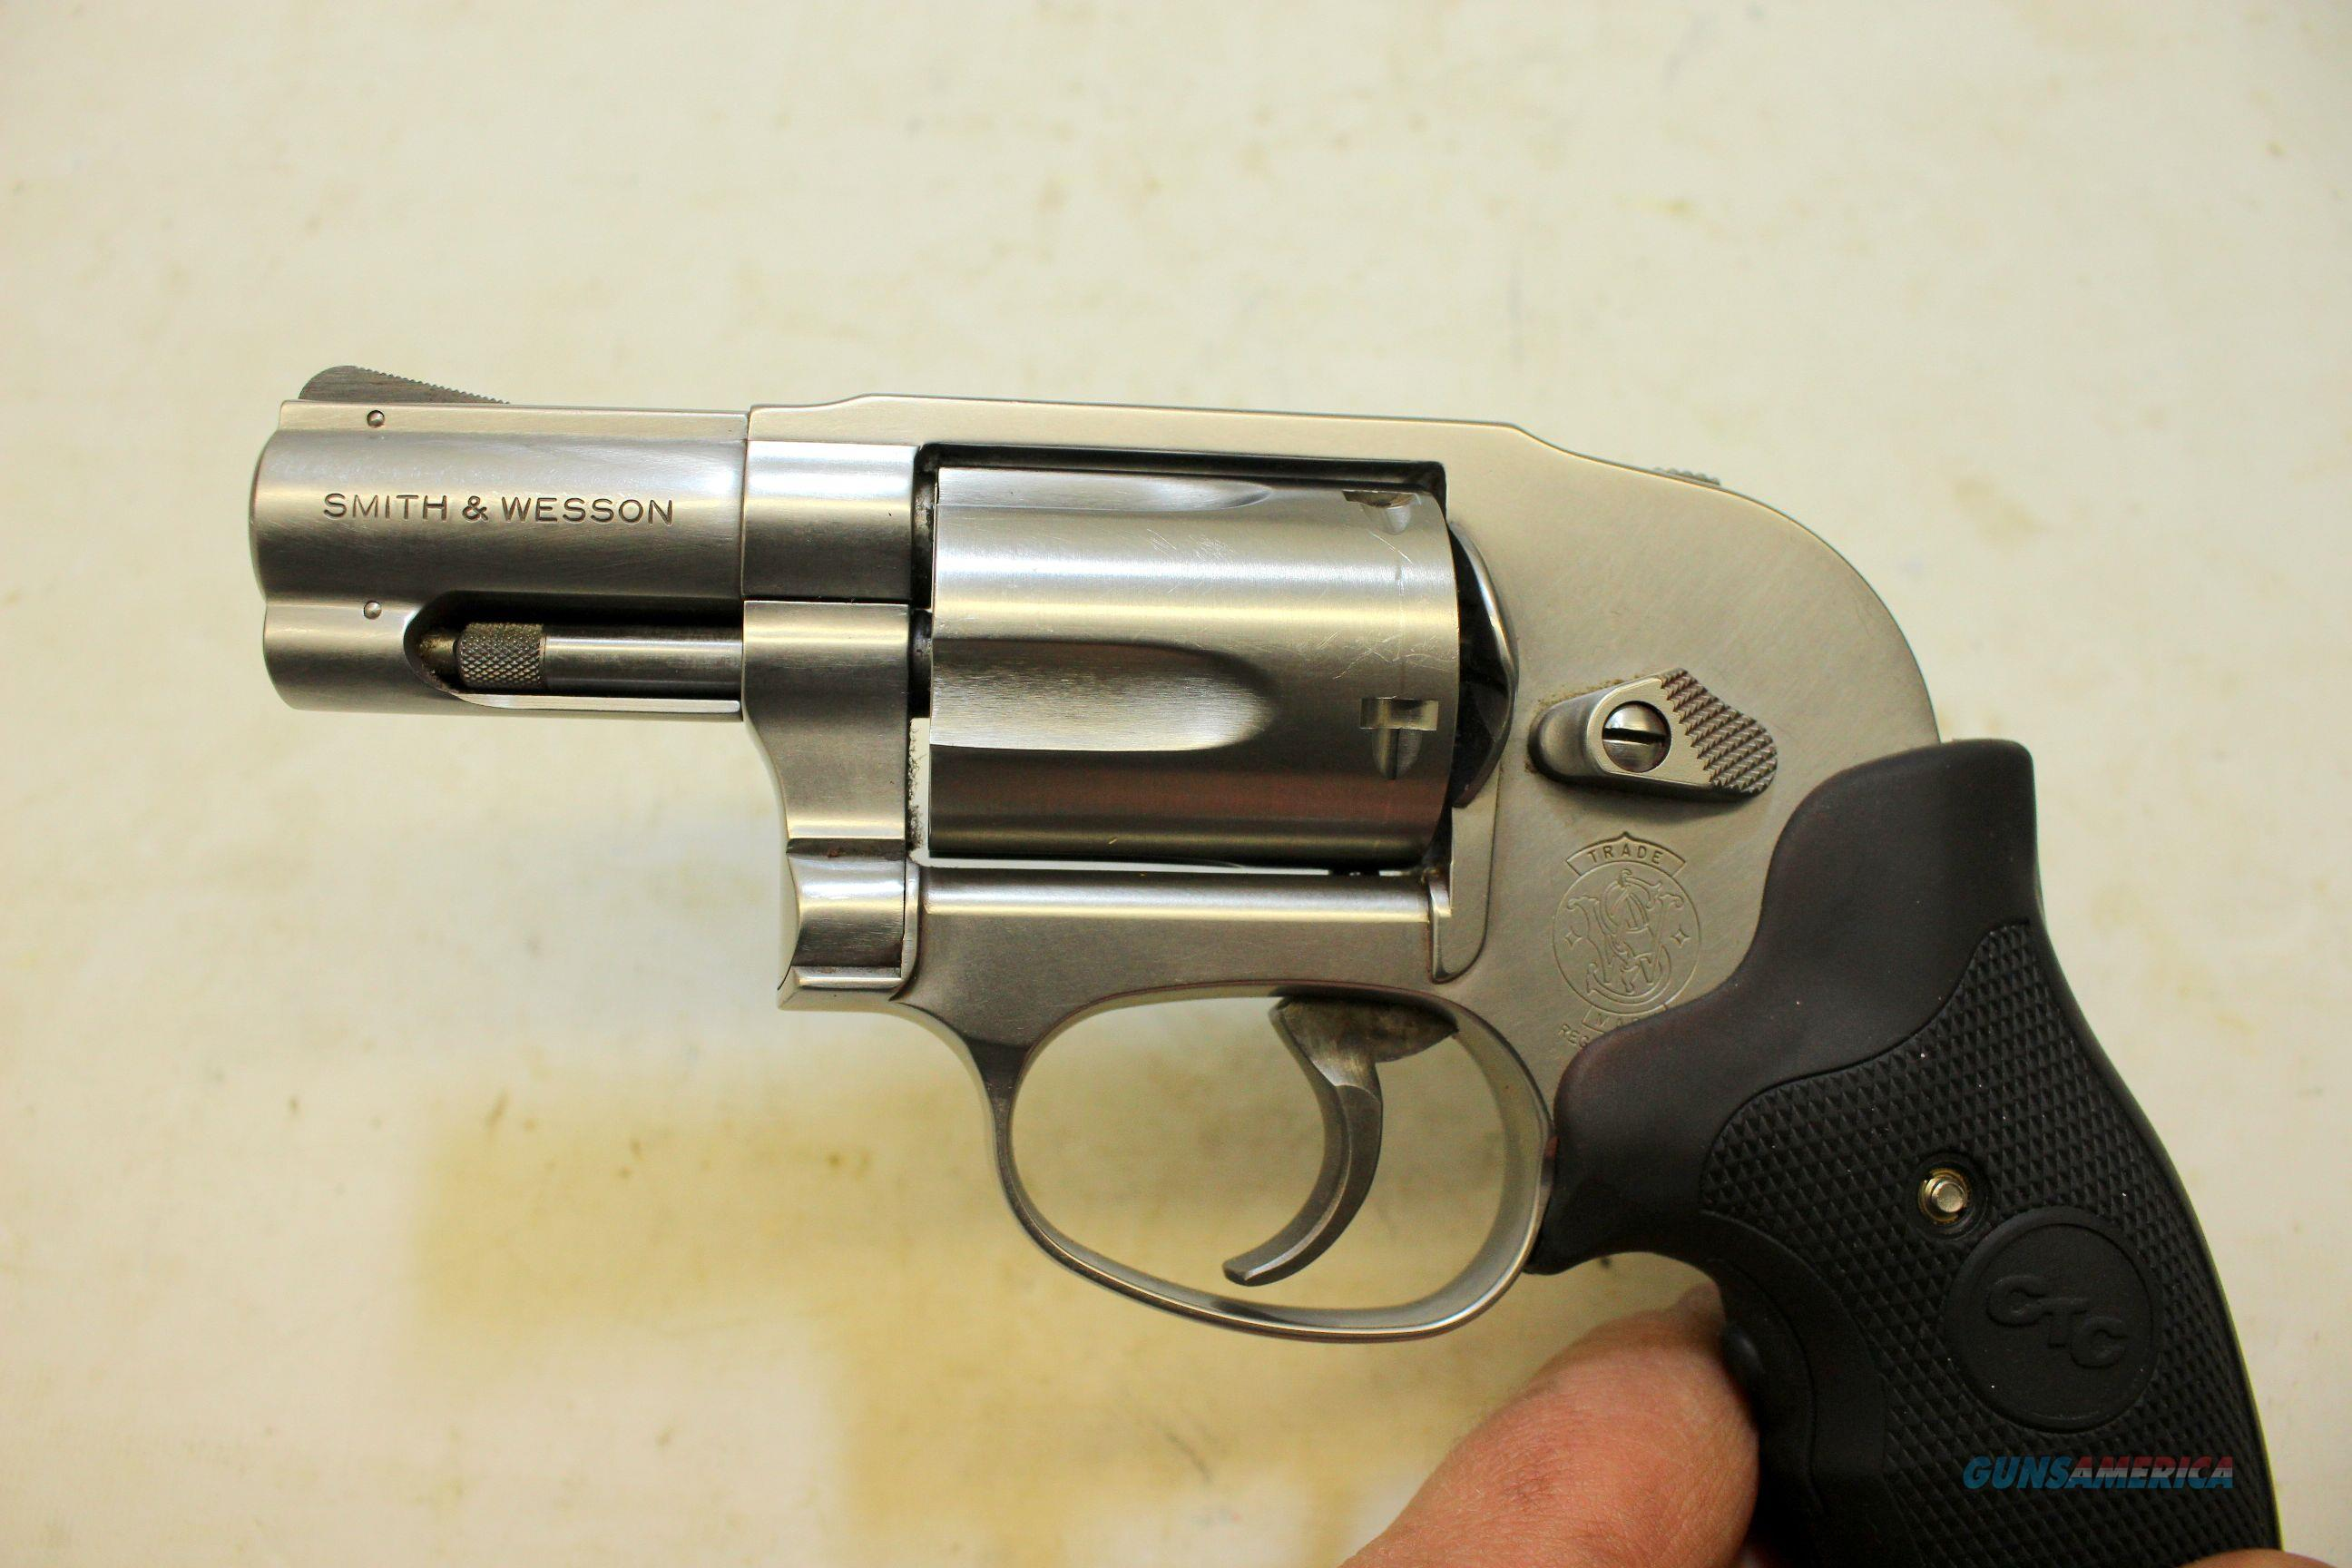 Smith & Wesson 649 - 3 SNUB NOSE revolver  357 magnum SHROUDED HAMMER  conceal carry